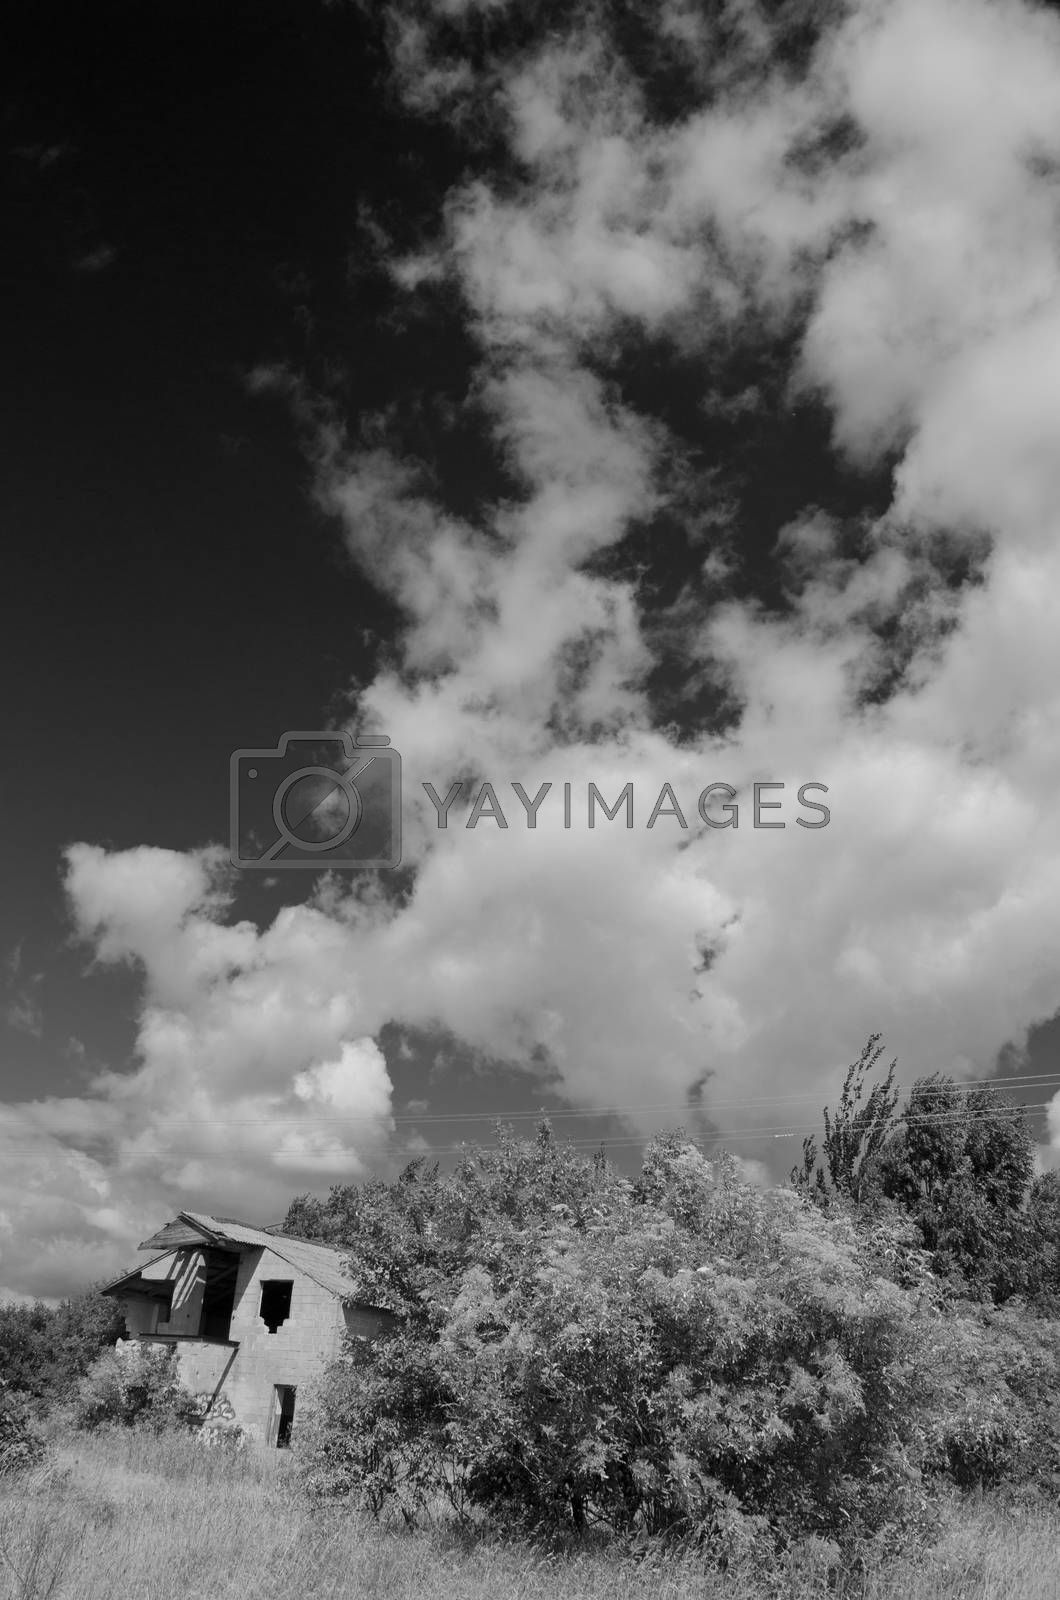 Royalty free image of Rural landscape with clouds and desolate house by alis_photo